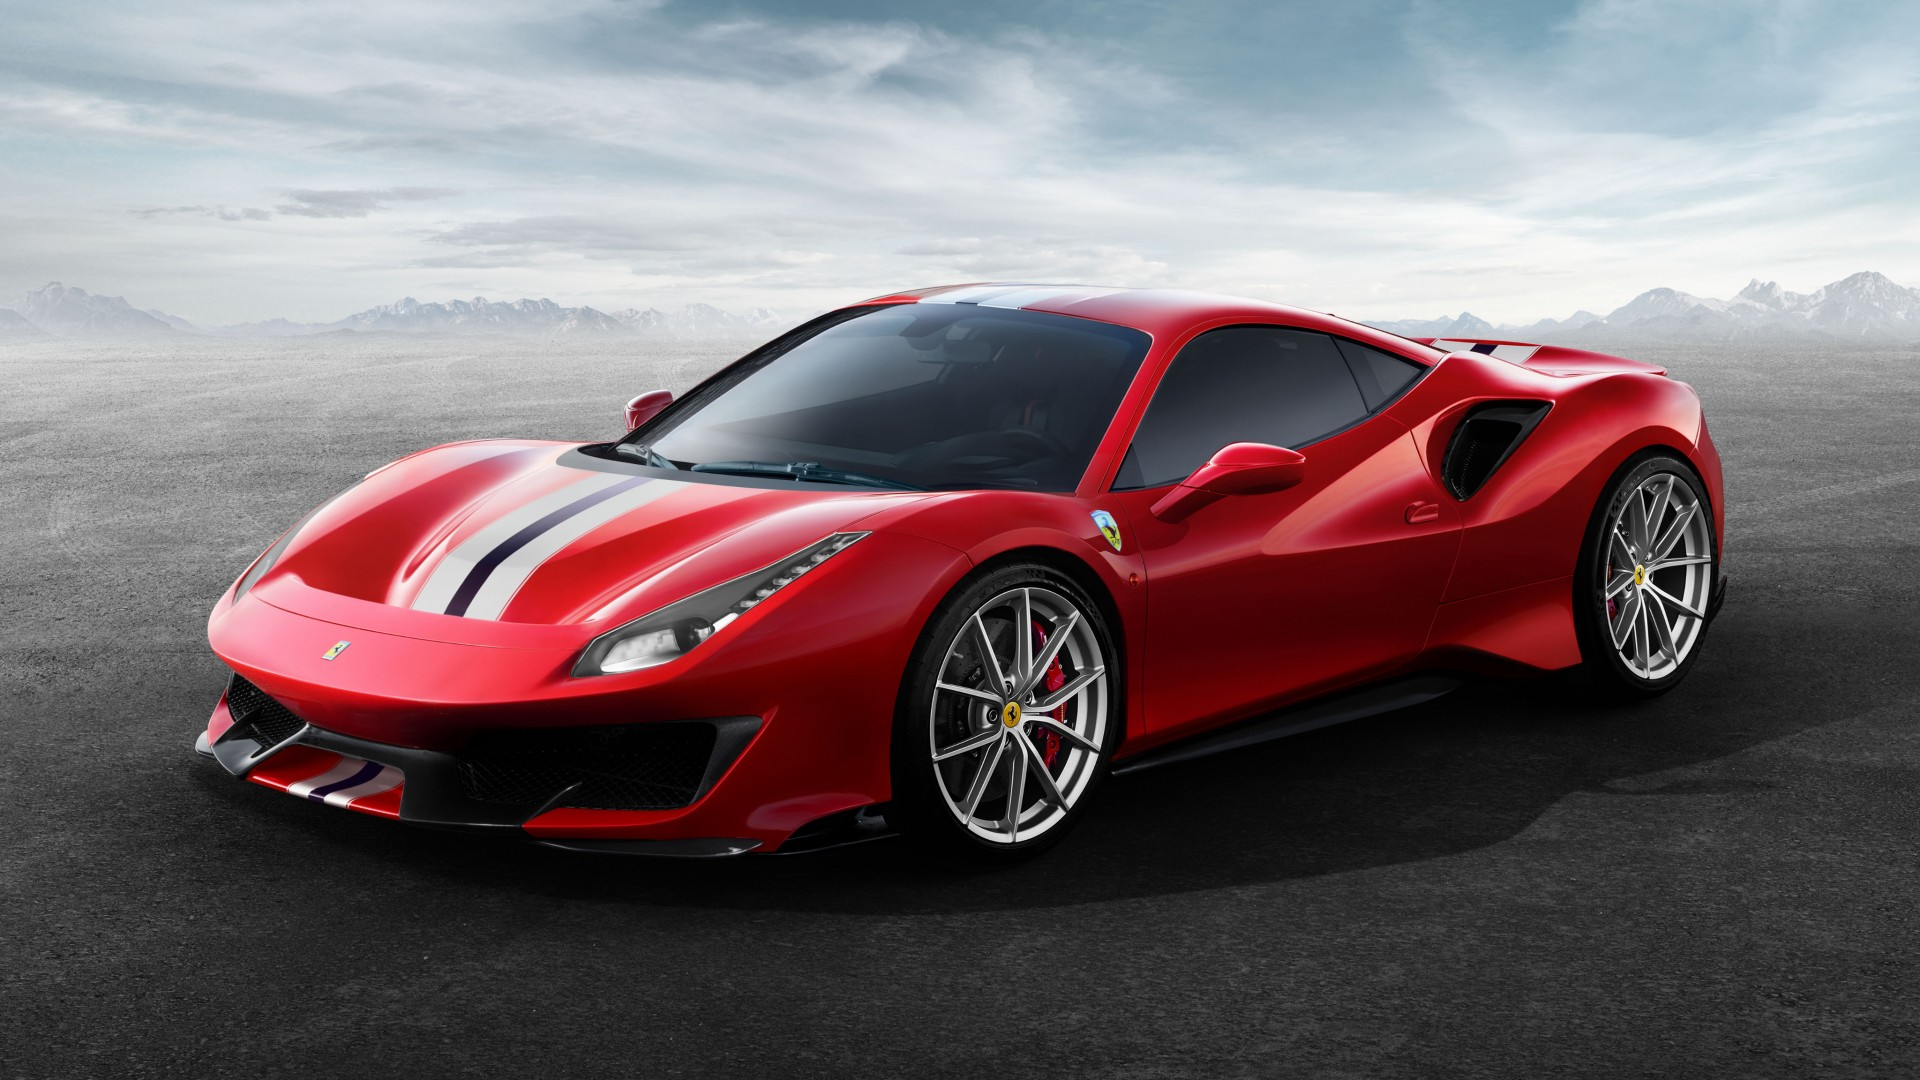 2018 Ferrari 488 Pista 4K 5 Wallpaper | HD Car Wallpapers | ID #9654